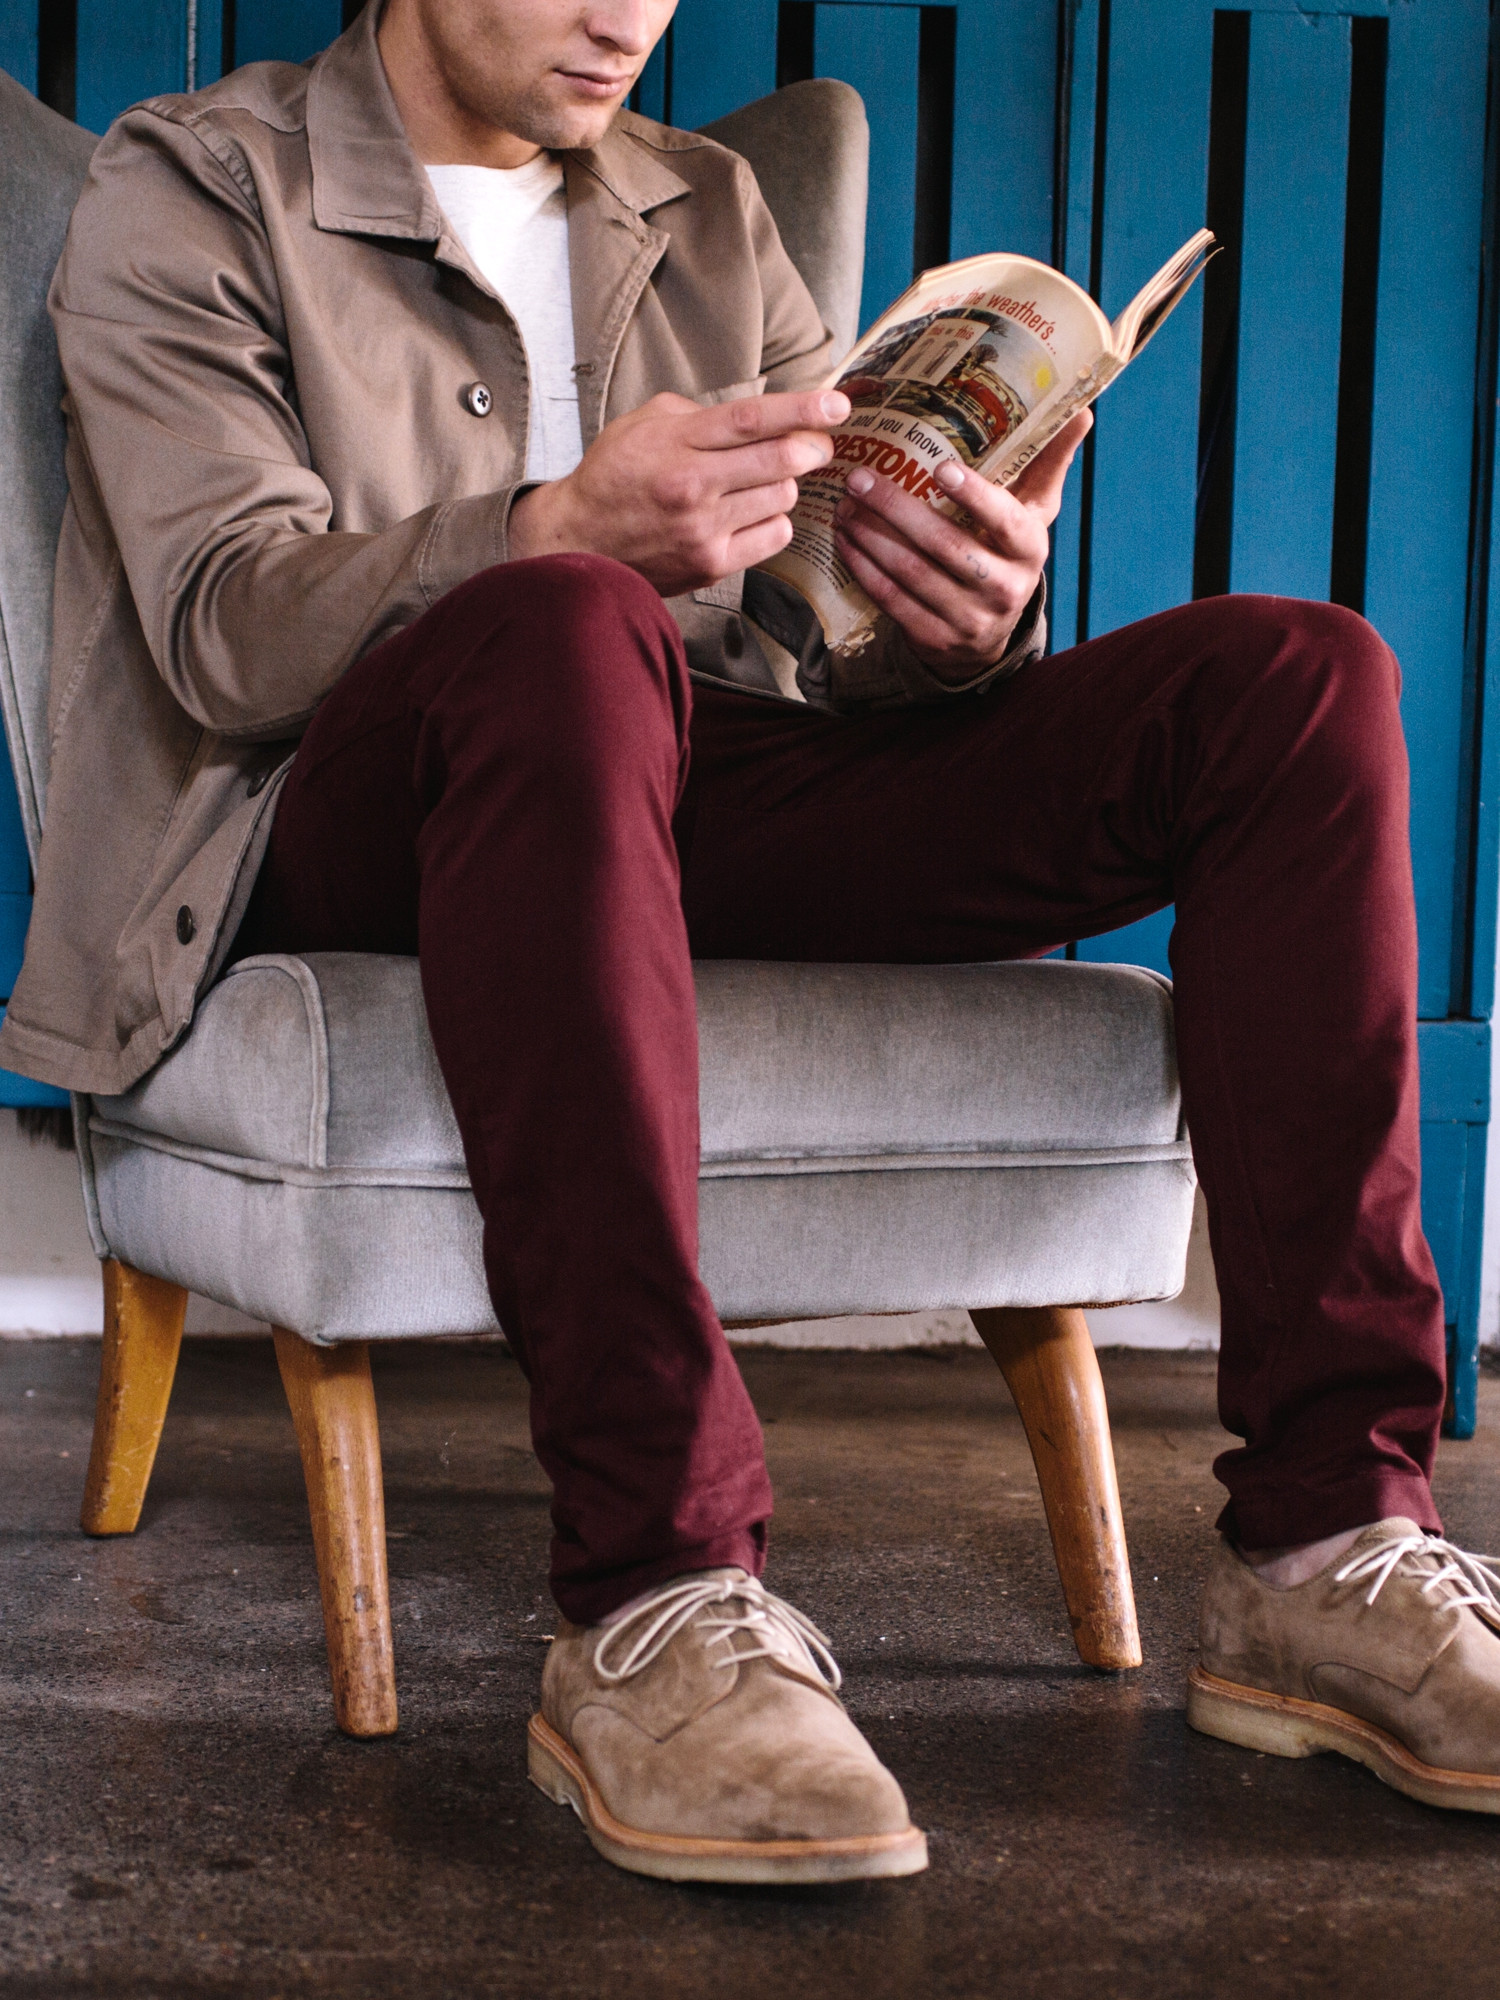 Men's outfit idea for 2021 with overshirt, white long-sleeved t-shirt, red chinos, suede shoes / desert shoes. Suitable for spring and fall.